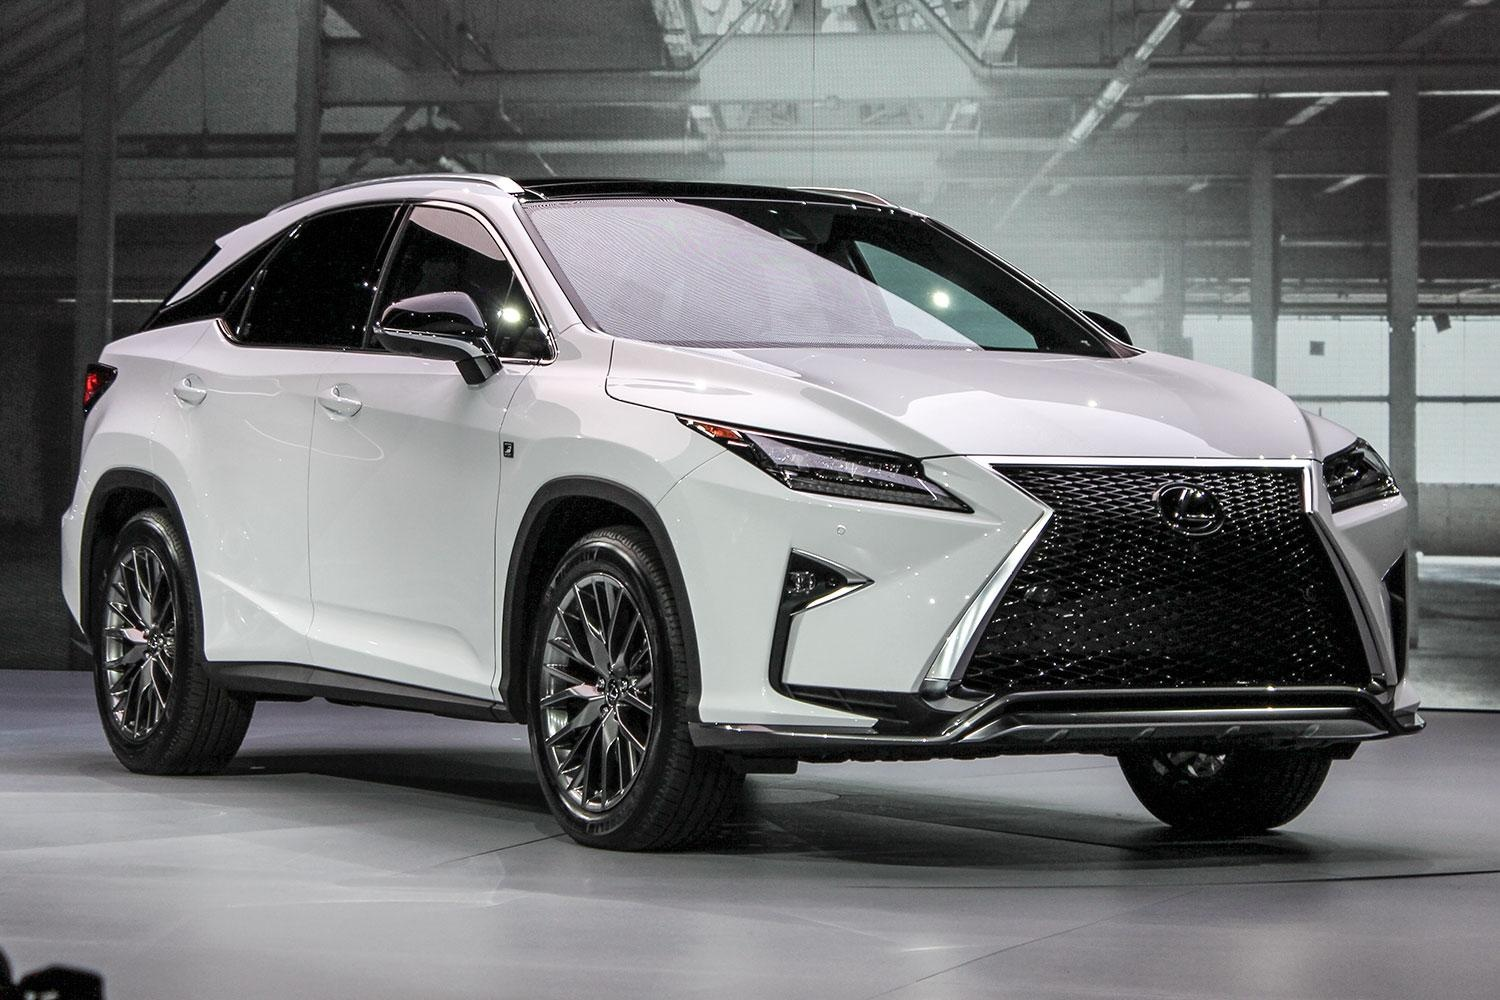 2016-lexus-rx-front-angle-1500x1000